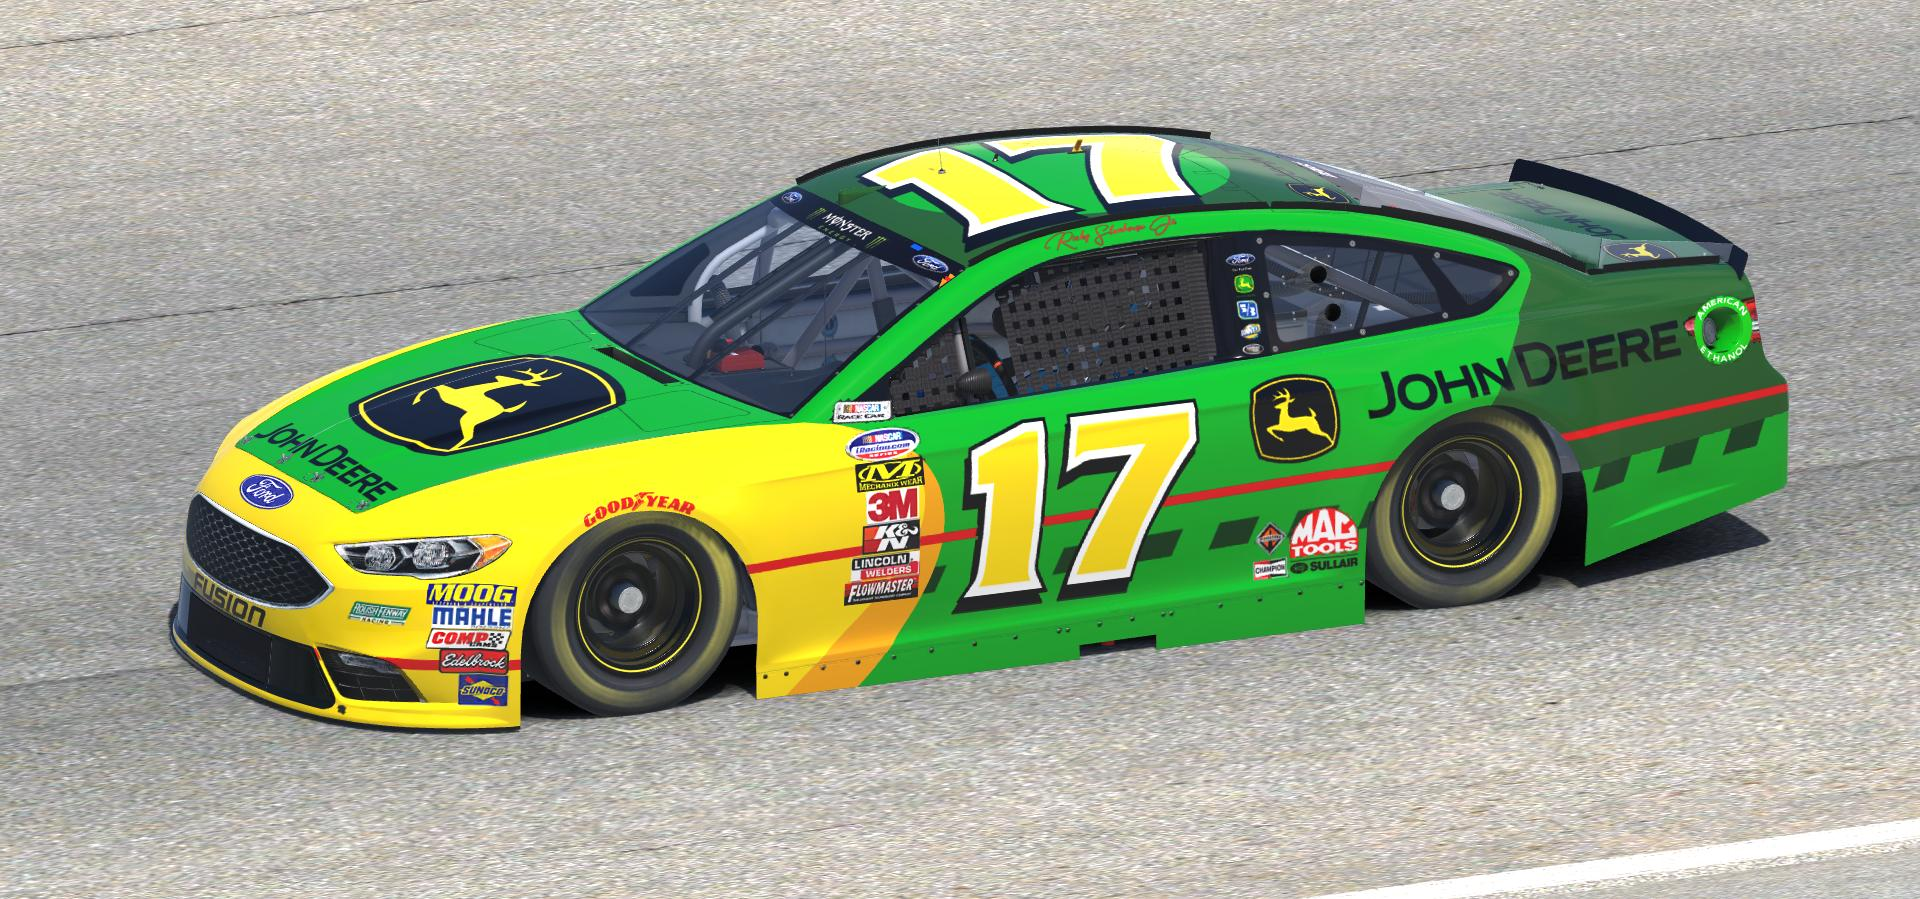 2018 ricky stenhouse john deere throwback fusion by doug. Black Bedroom Furniture Sets. Home Design Ideas